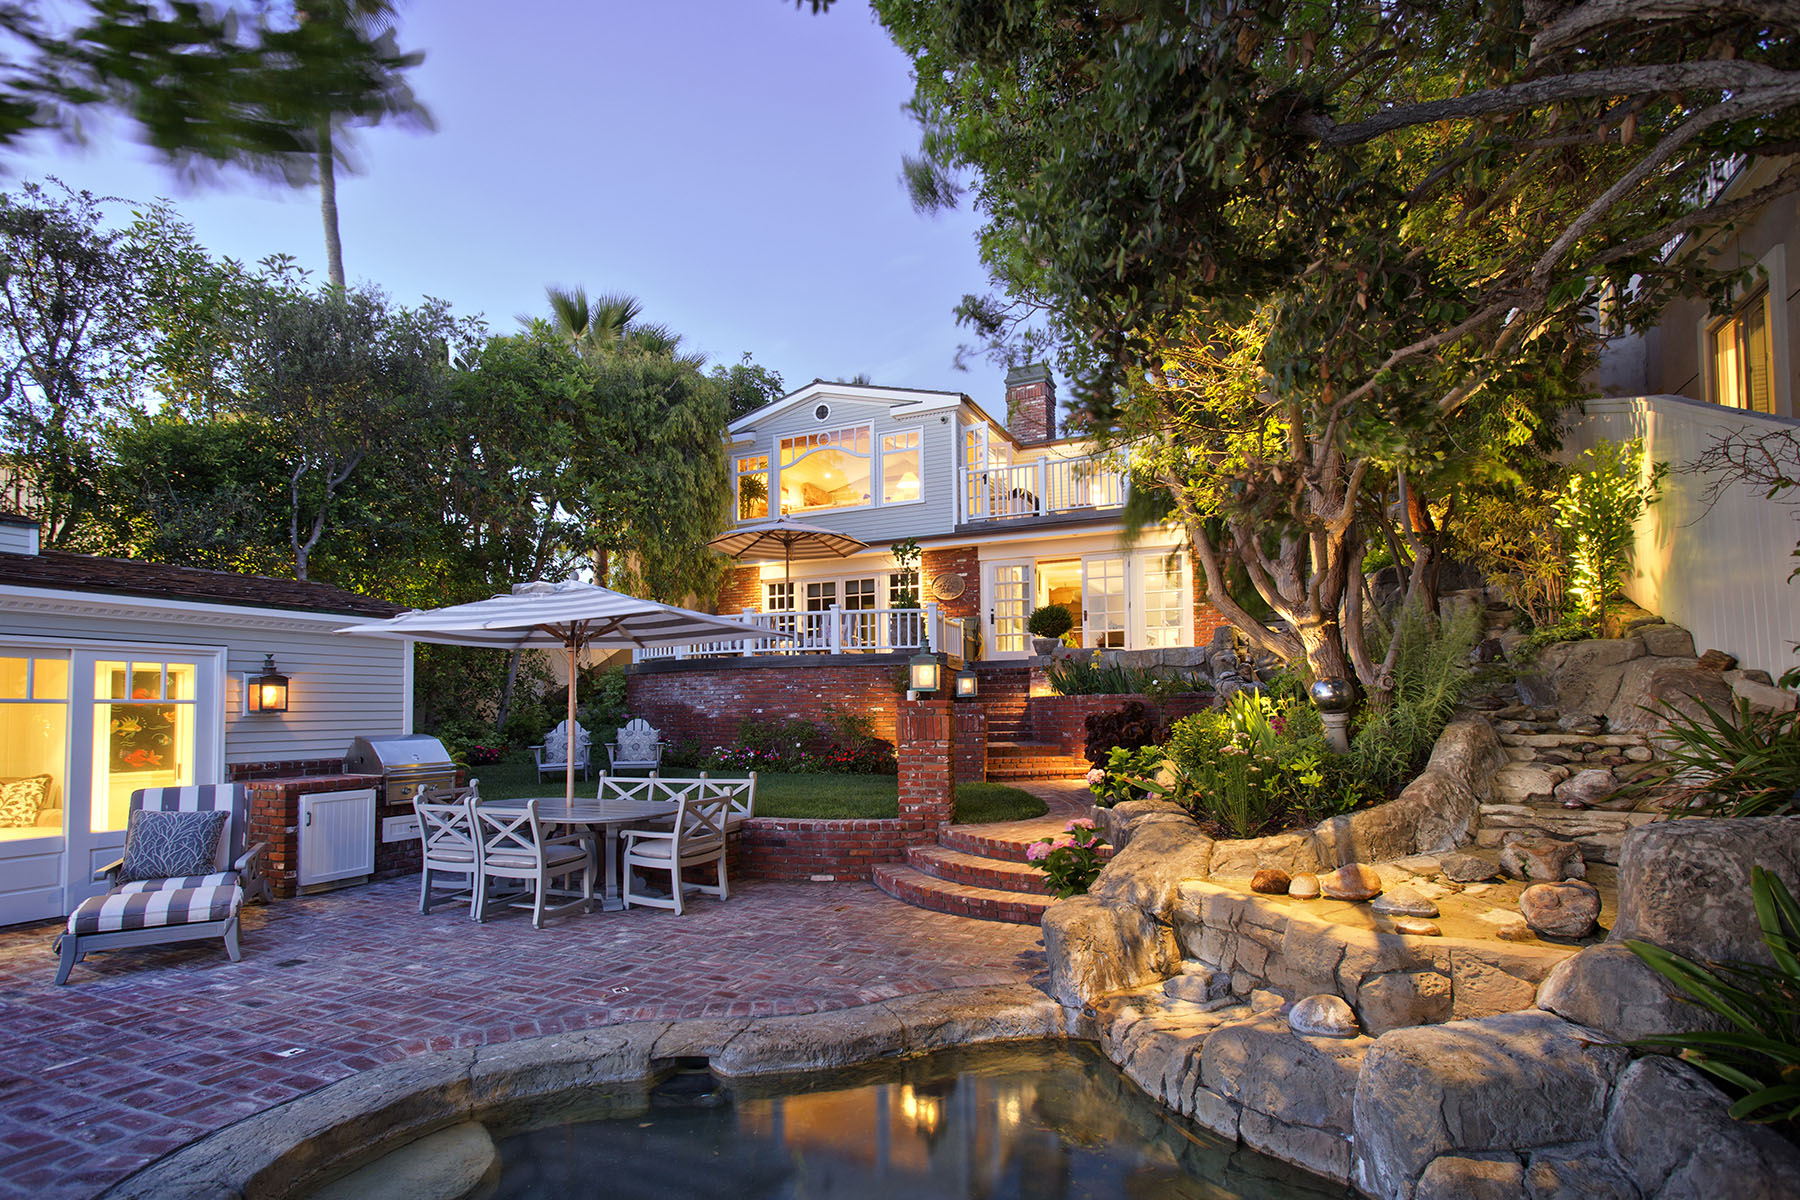 United states laguna beach laguna beach for sale on for Property for sale laguna beach